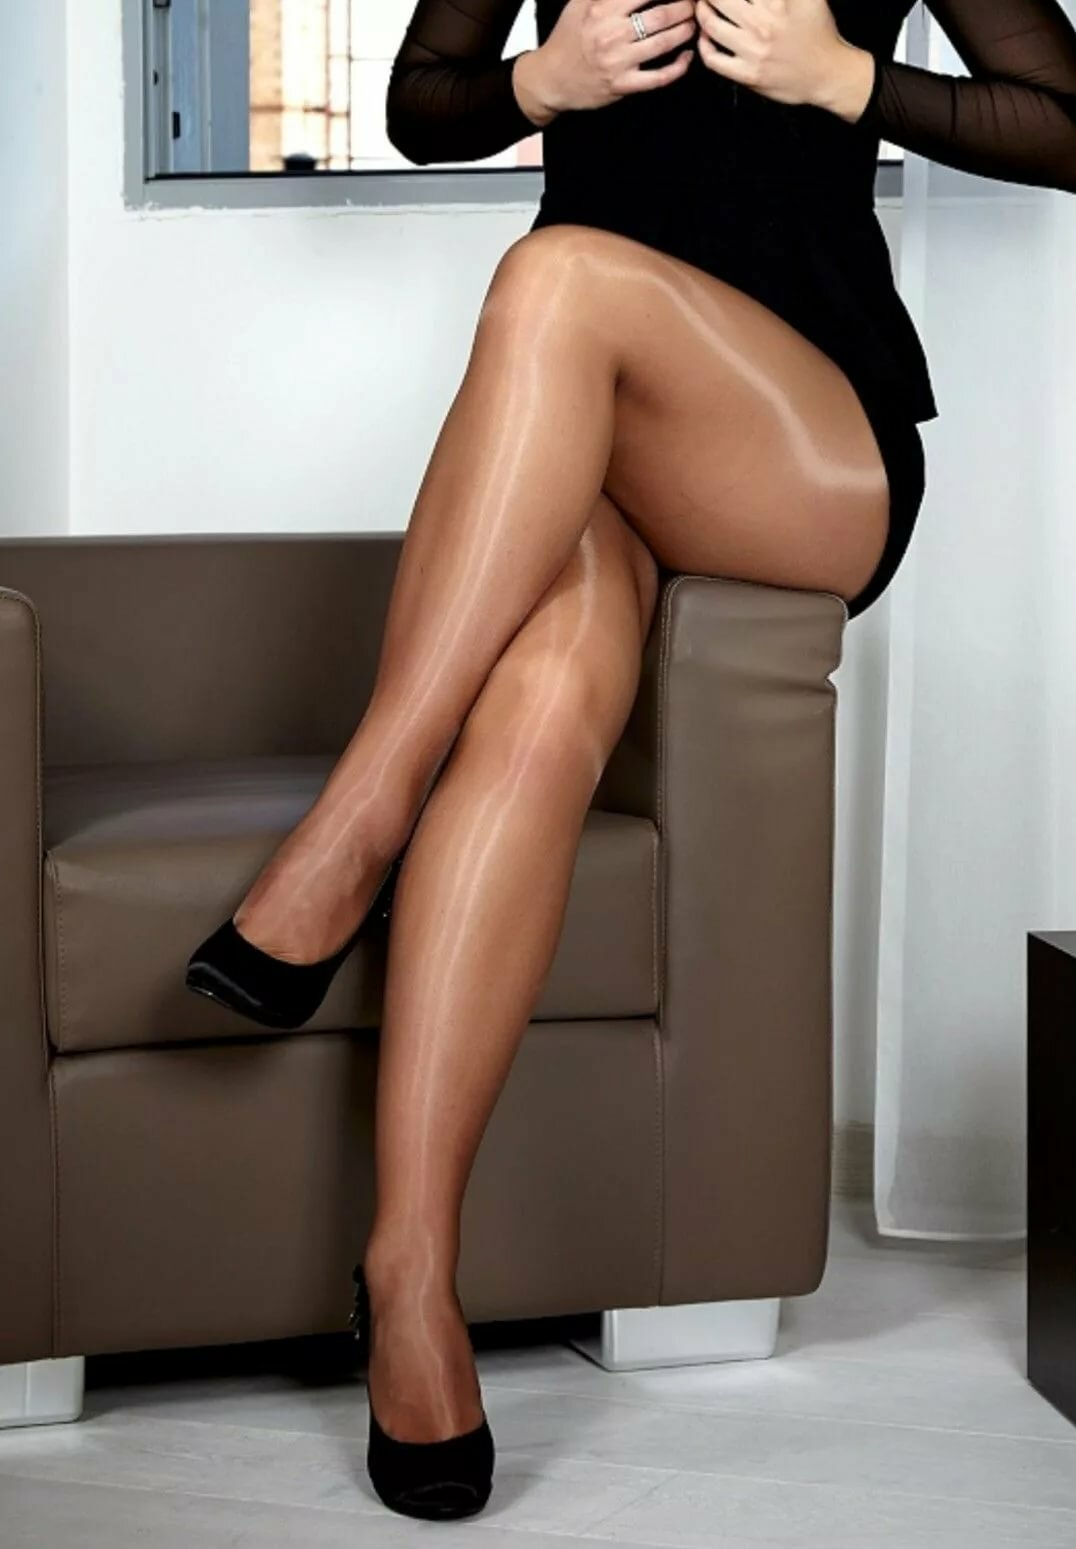 Sexy music legs sheer neutral basic nylons tights stockings pantyhose hosiery